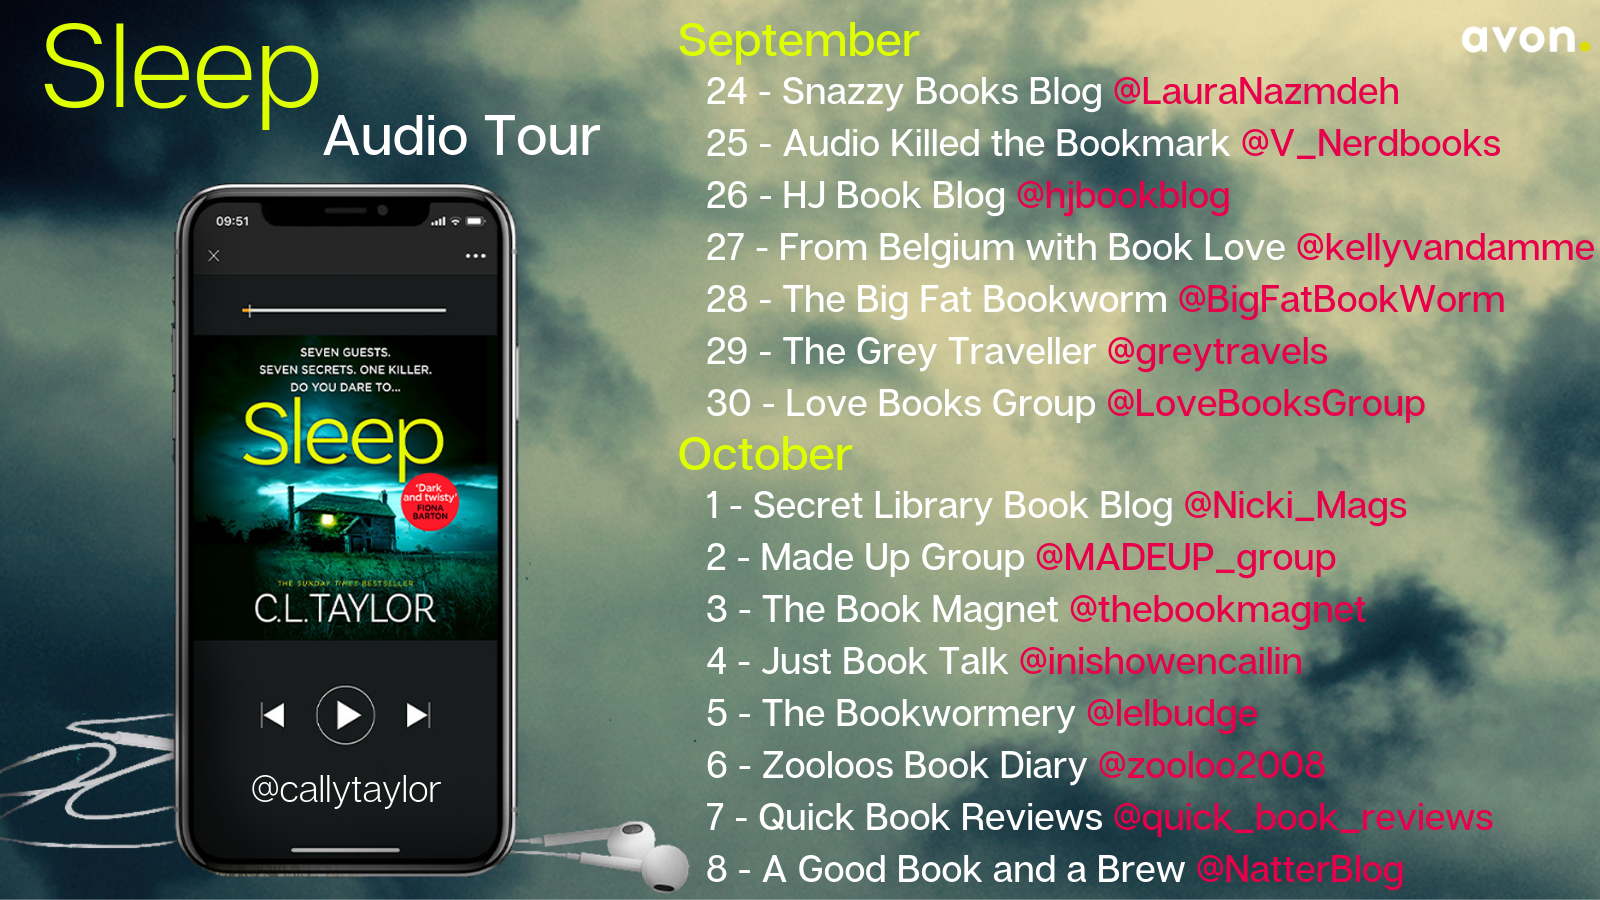 #AudiobookReview of Sleep by C.L Taylor @callytaylor @LitRedCorvette @avonbooksuk